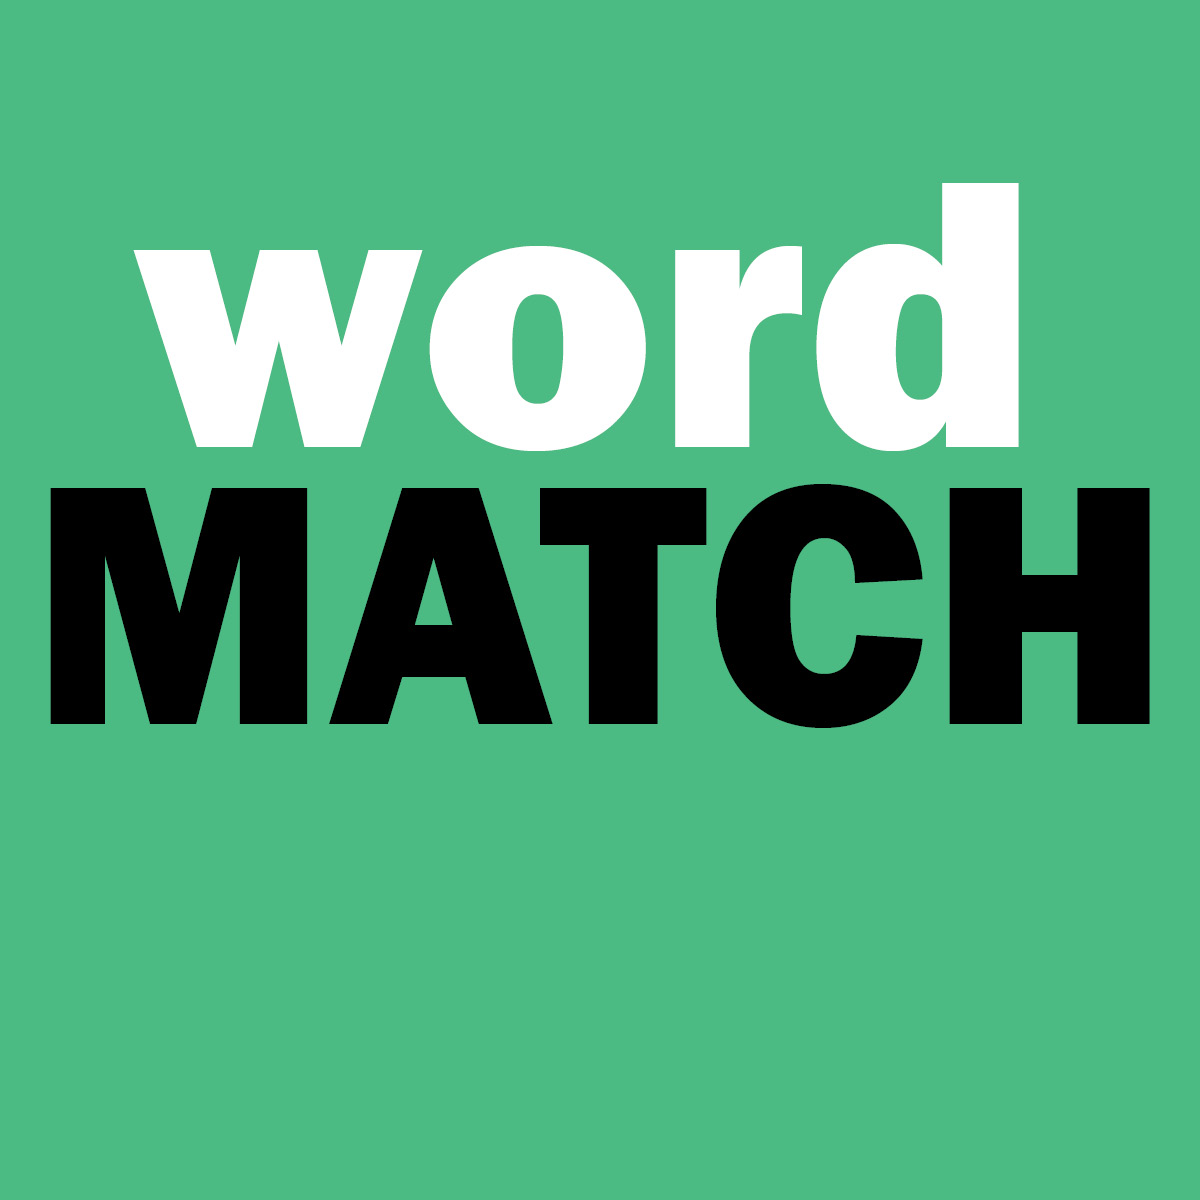 Word Match logo